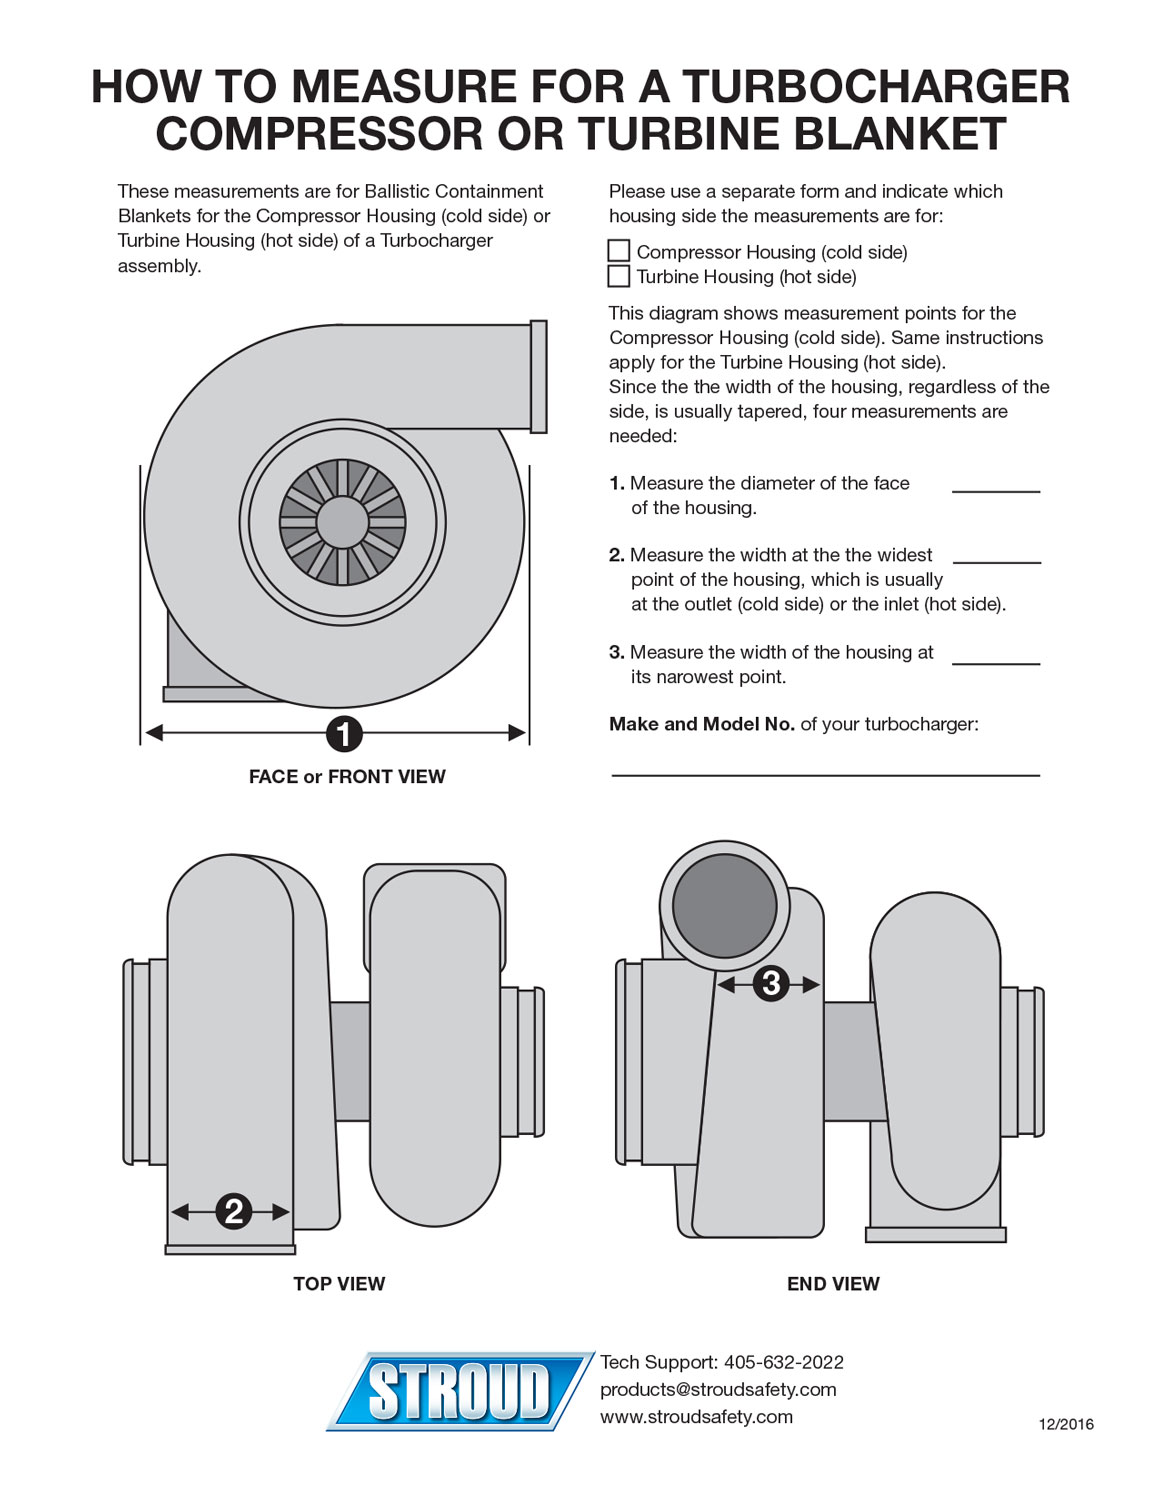 Download the How to Measure for a Turbocharger Compressor or Turbine Blanket instruction sheet here (PDF).